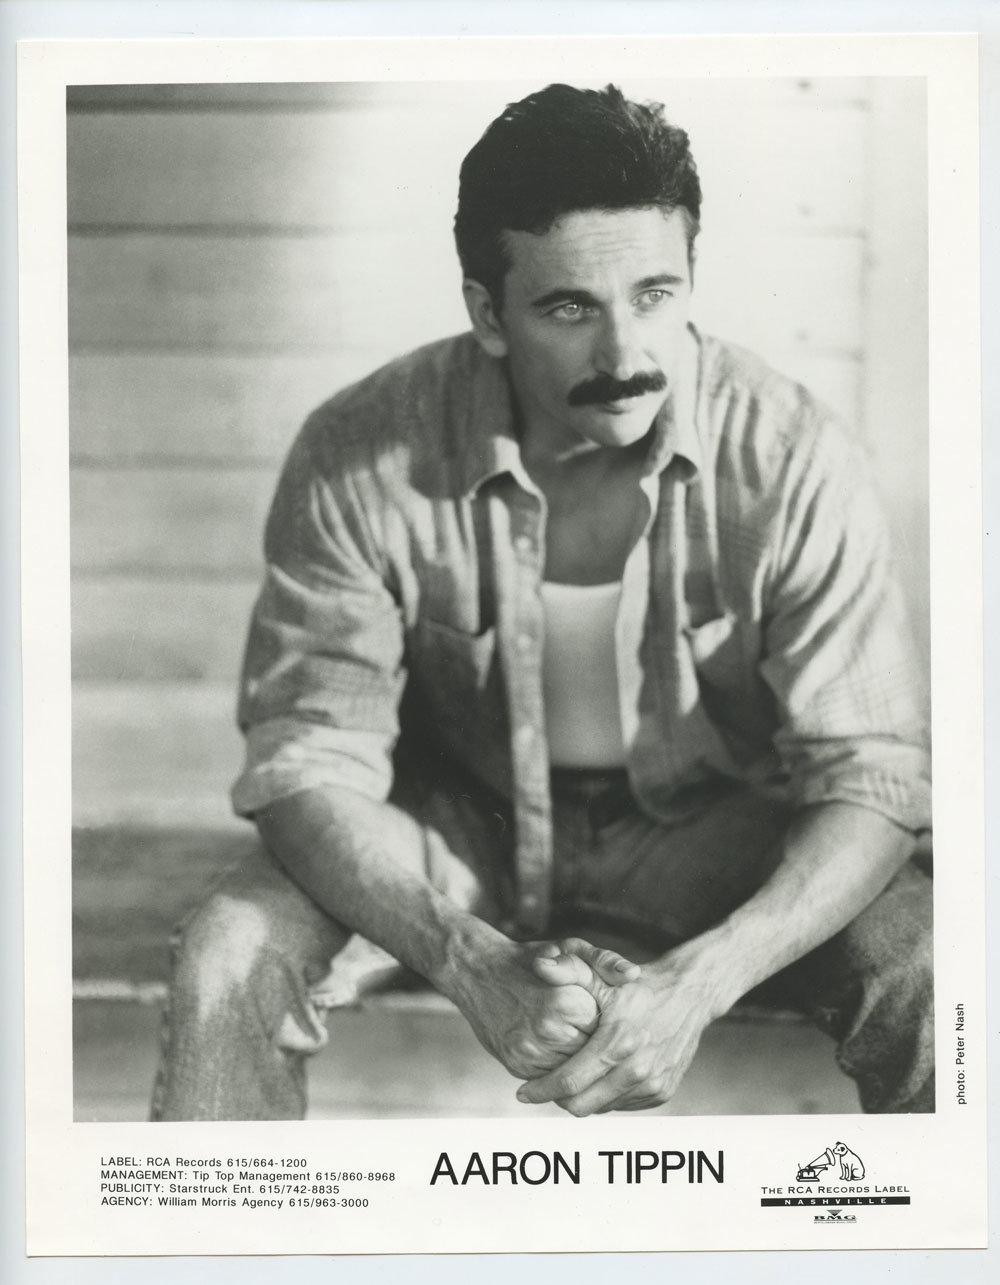 Aaron Tippin Photo 1994 Lookin' Back at Myself Publicity Promo RCA Records